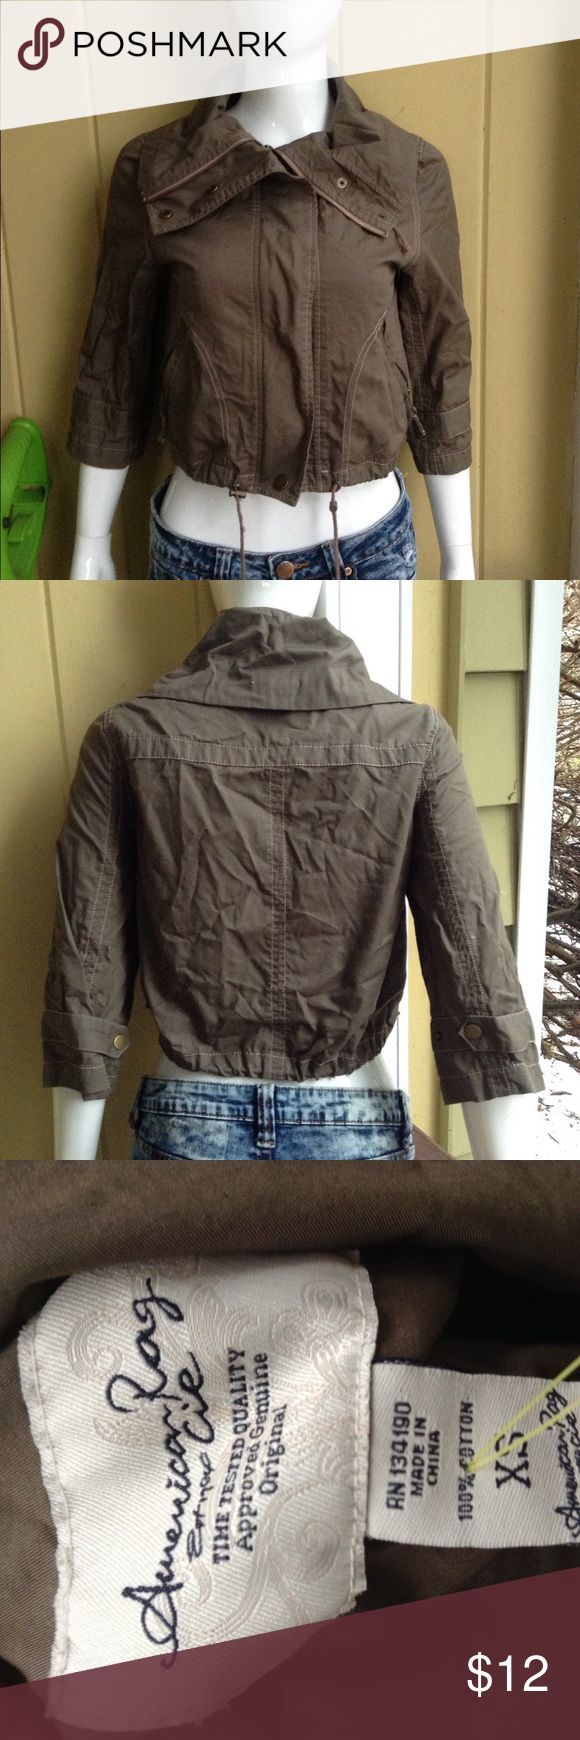 American Rag cropped Jacket XS This is an Olive green Cropped jacket from American rag. It both zips and buttons up and has zip up pockets. It does not have a hood. Very good condition, no holes or stains American Rag Jackets & Coats Utility Jackets